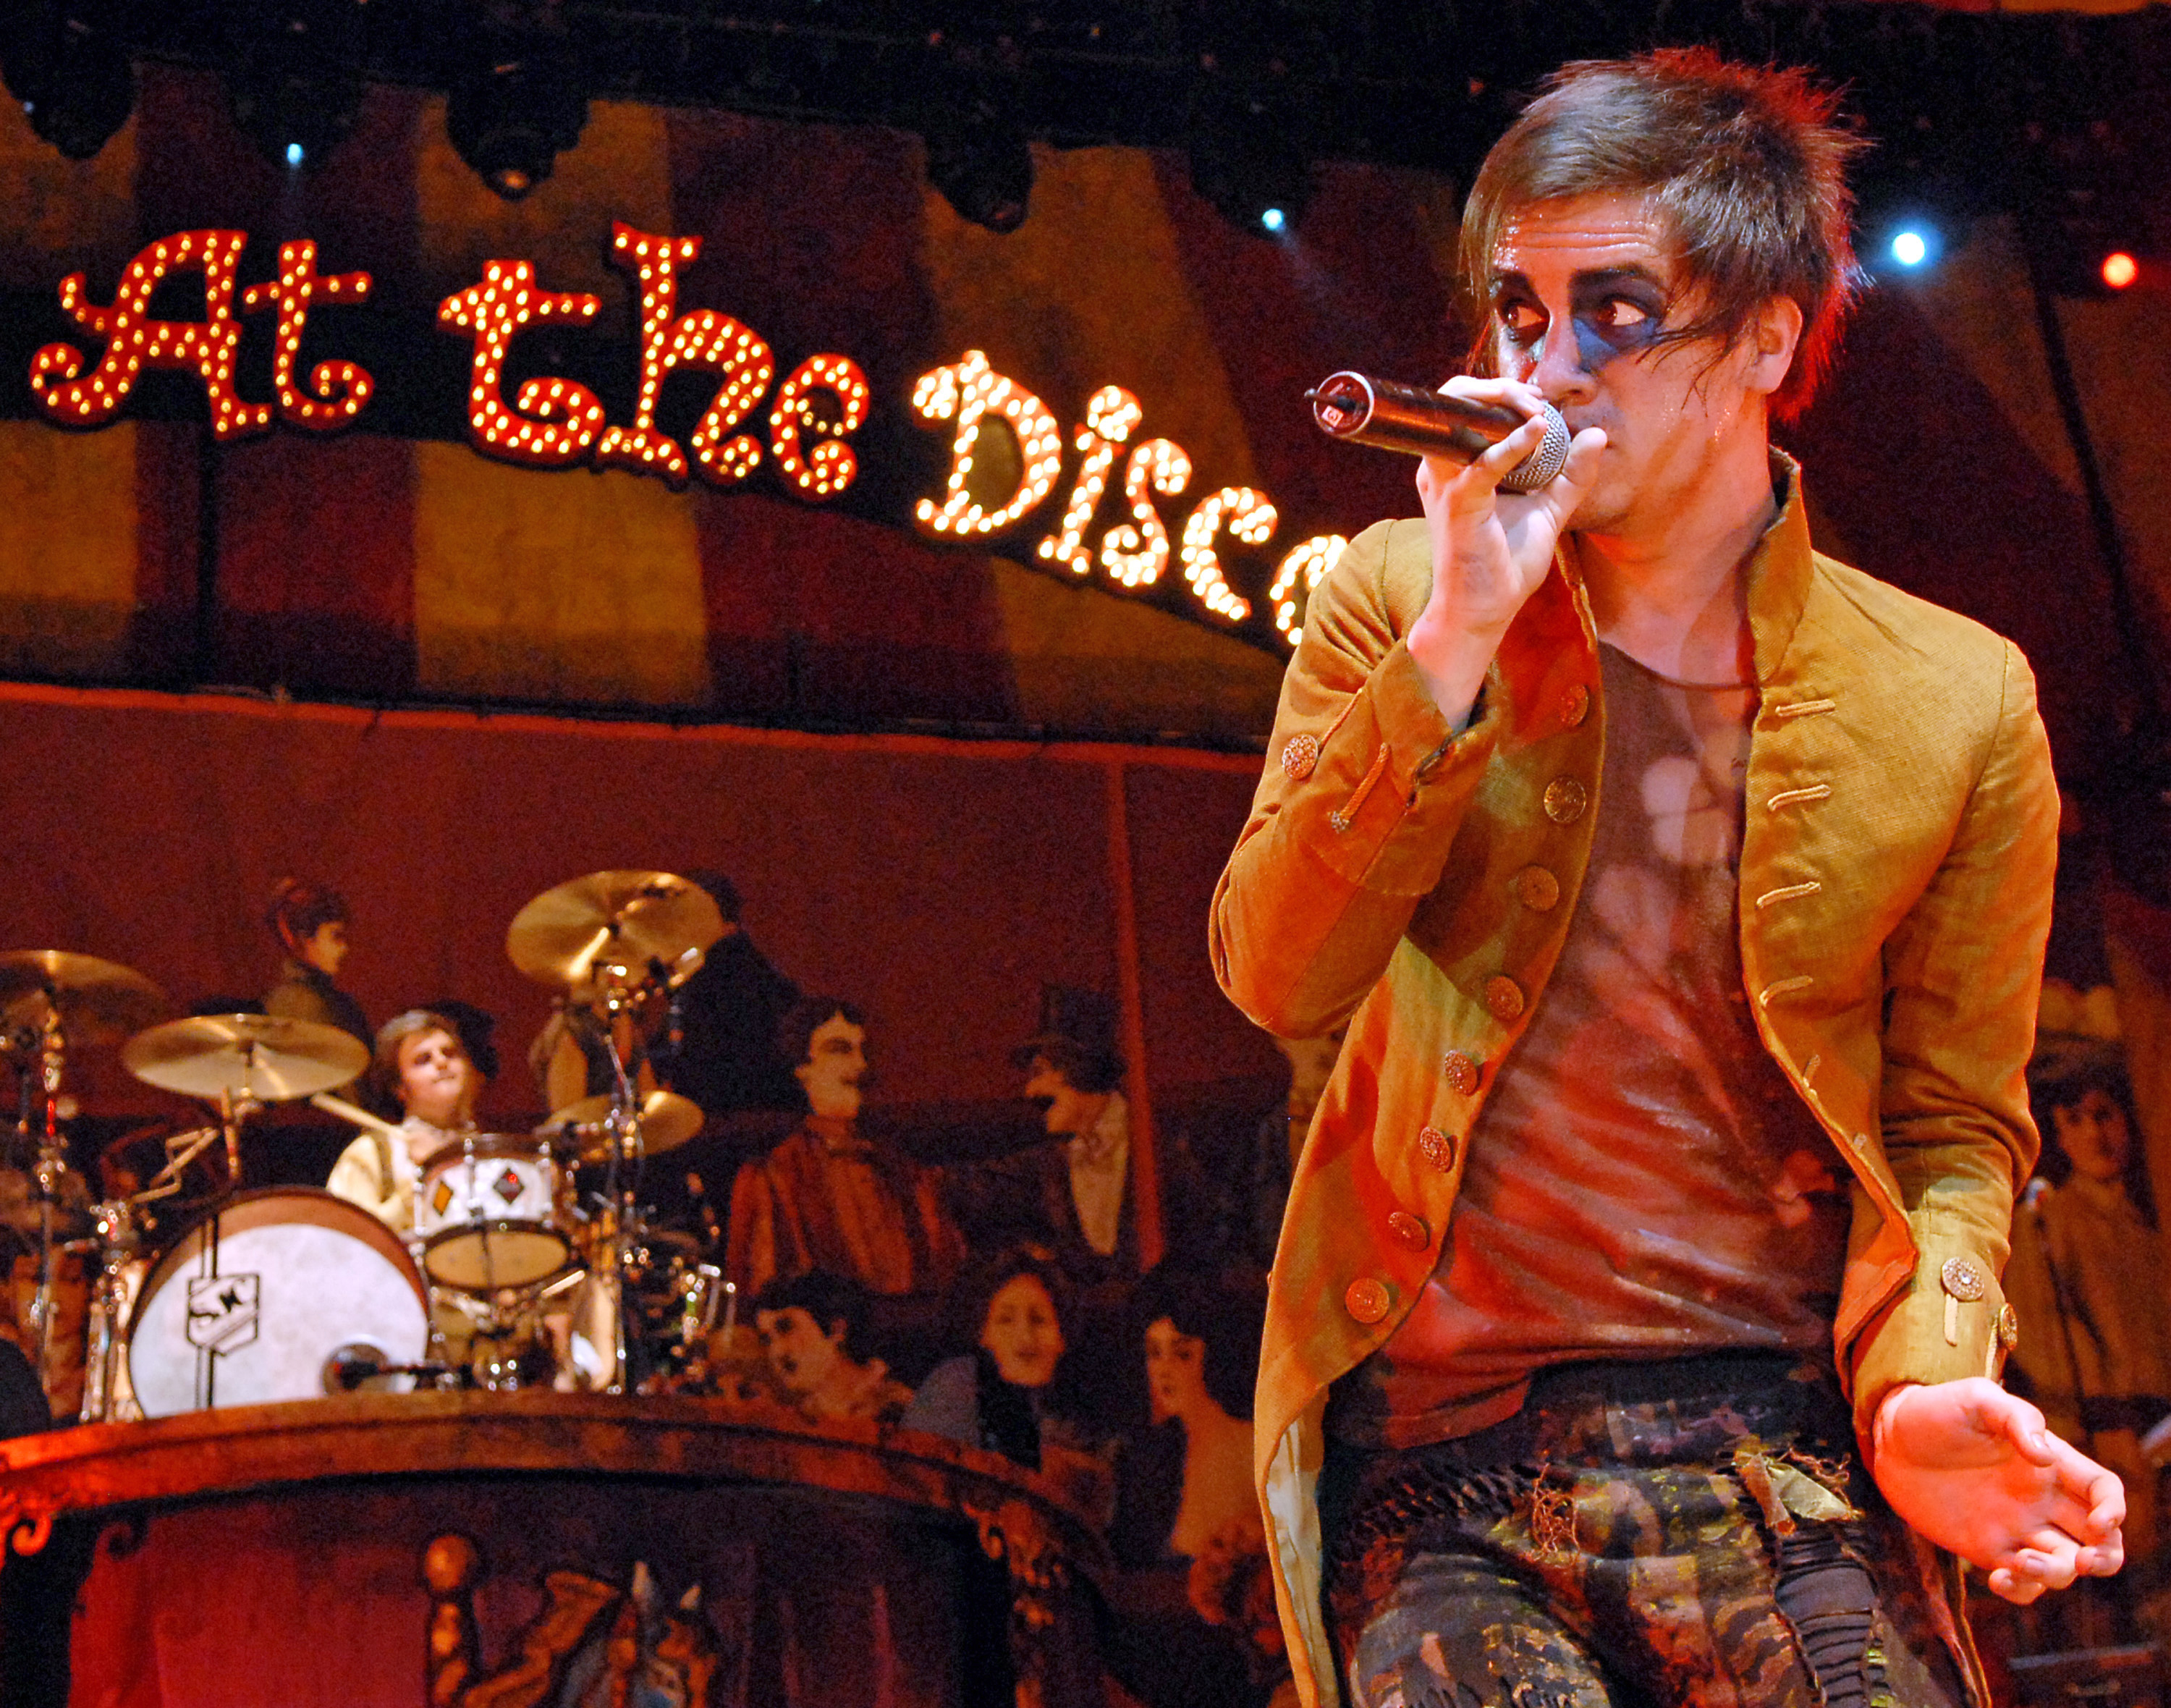 f2a84275 Panic! at the Disco: High School Musical – Rolling Stone